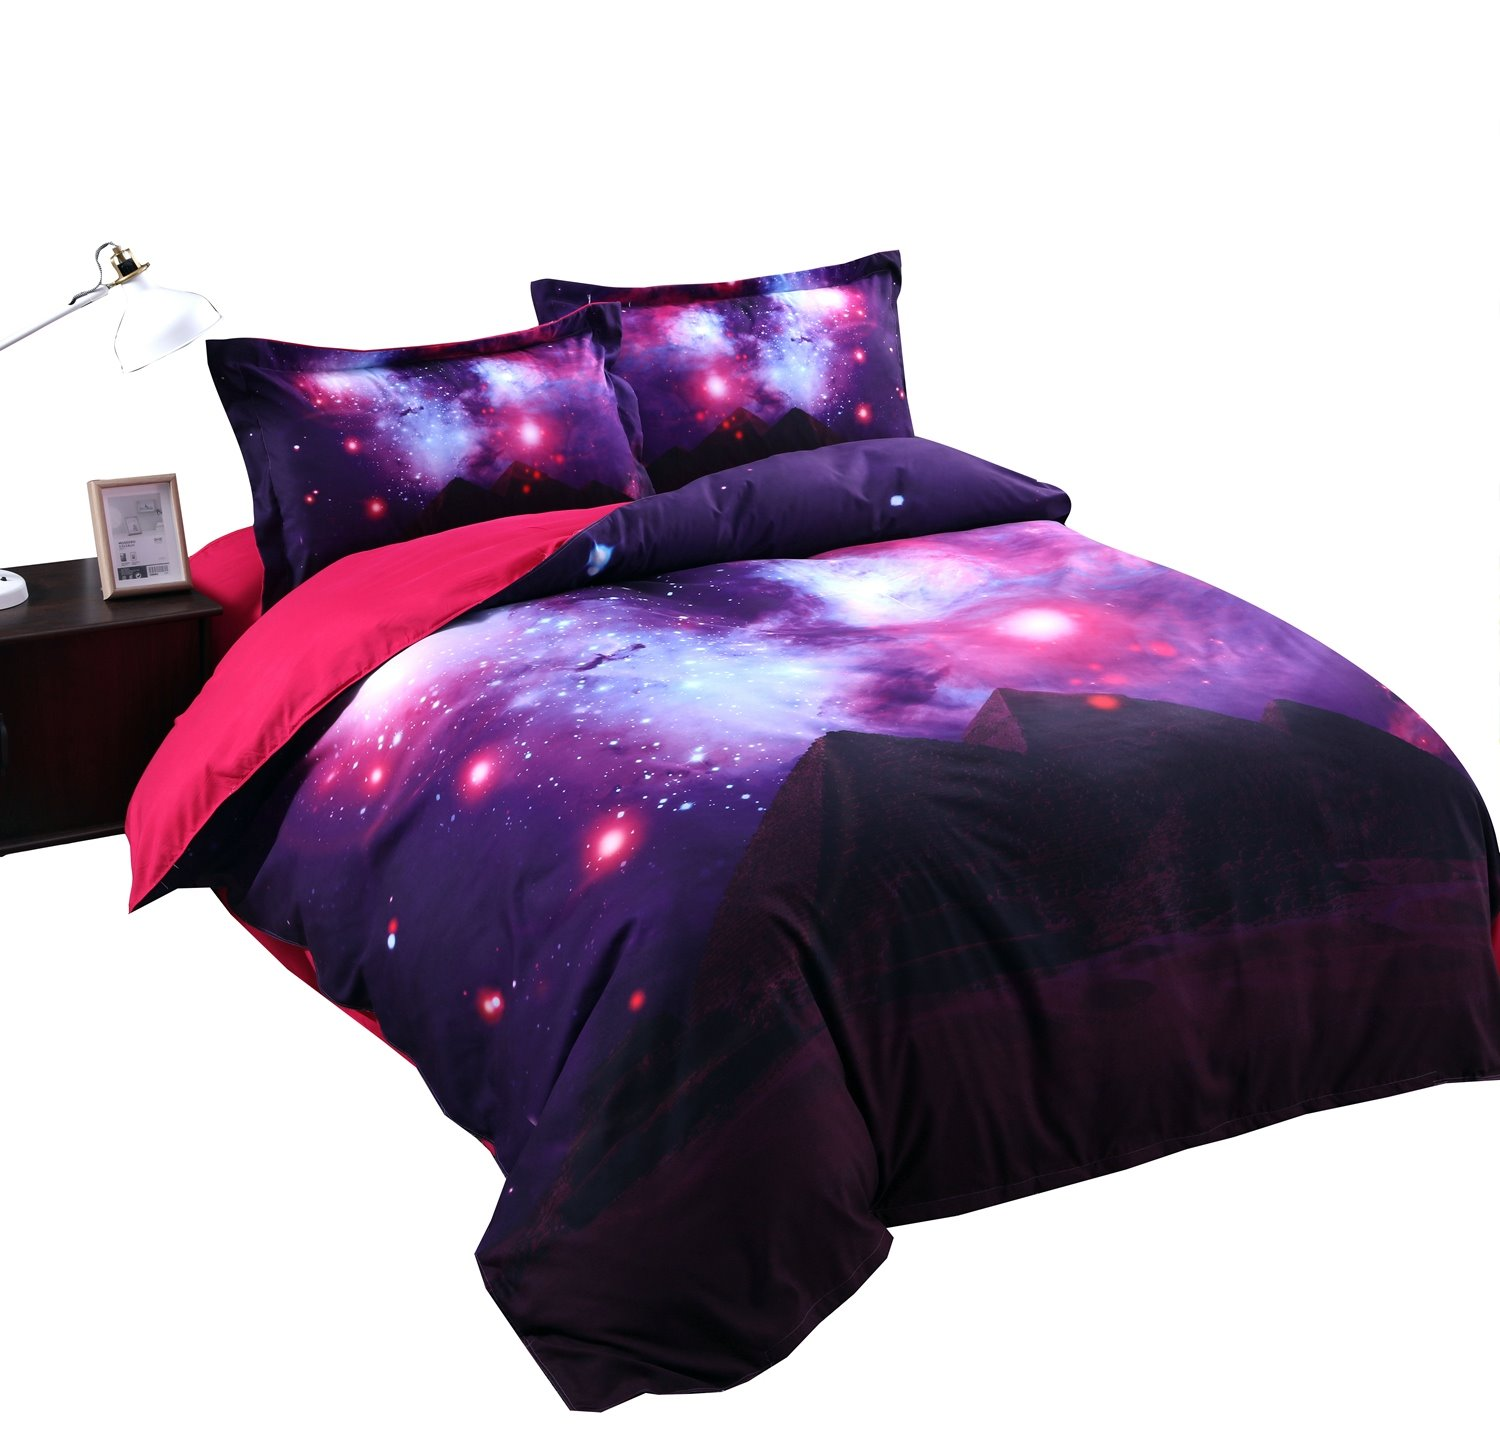 Onlwe 3D Scintillating Galaxy and Mountain Printed 4-Piece Purple Bedding Sets/Duvet Covers